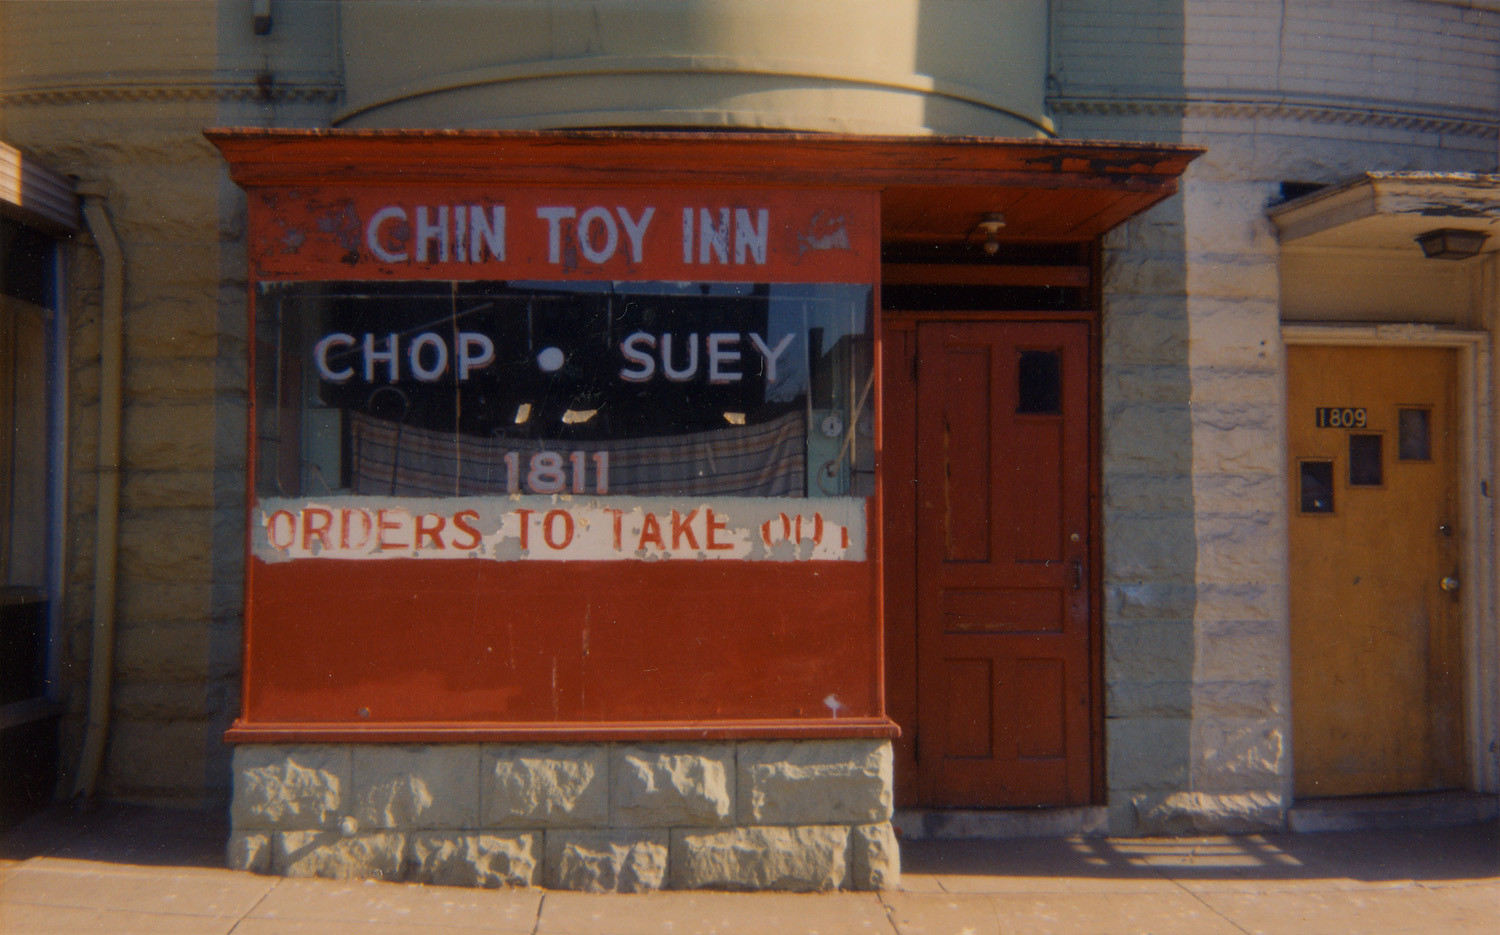 William Christenberry, Chin Toy Inn, 18th Street, NW, Washington D.C., 1973